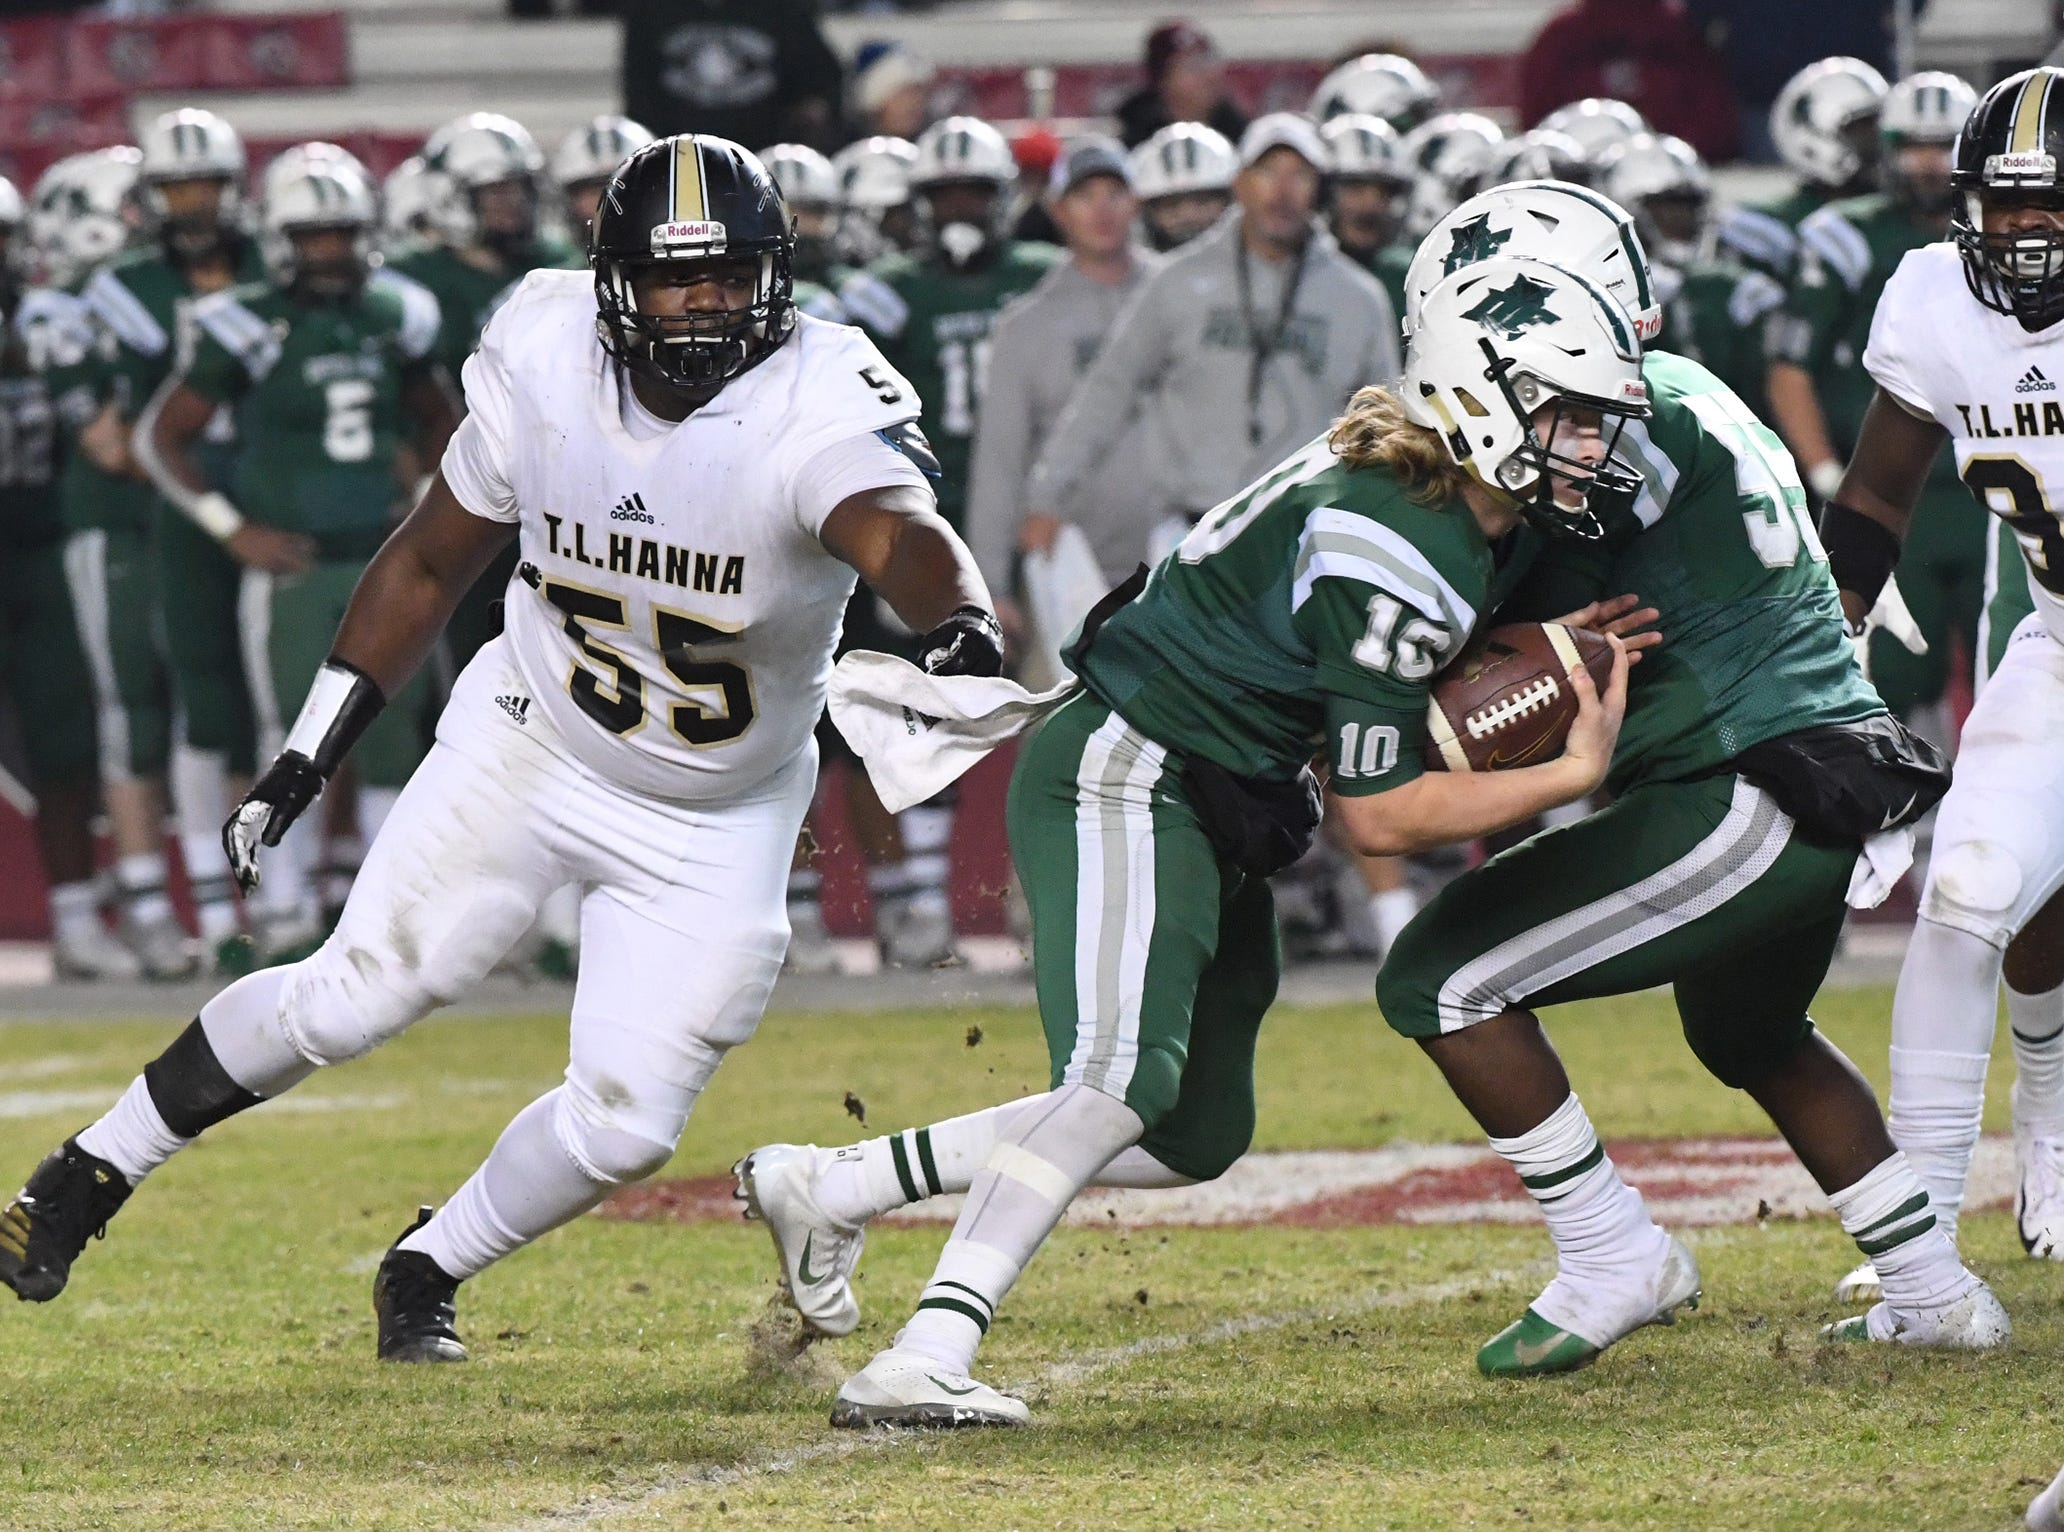 TL Hanna senior Devonte Jones (55) pursues Dutch Fork junior Tyler Olenchuk(10) during the fourth quarter of the Class AAAAA state championship game at Williams-Brice Stadium in Columbia Saturday, December 8, 2018.